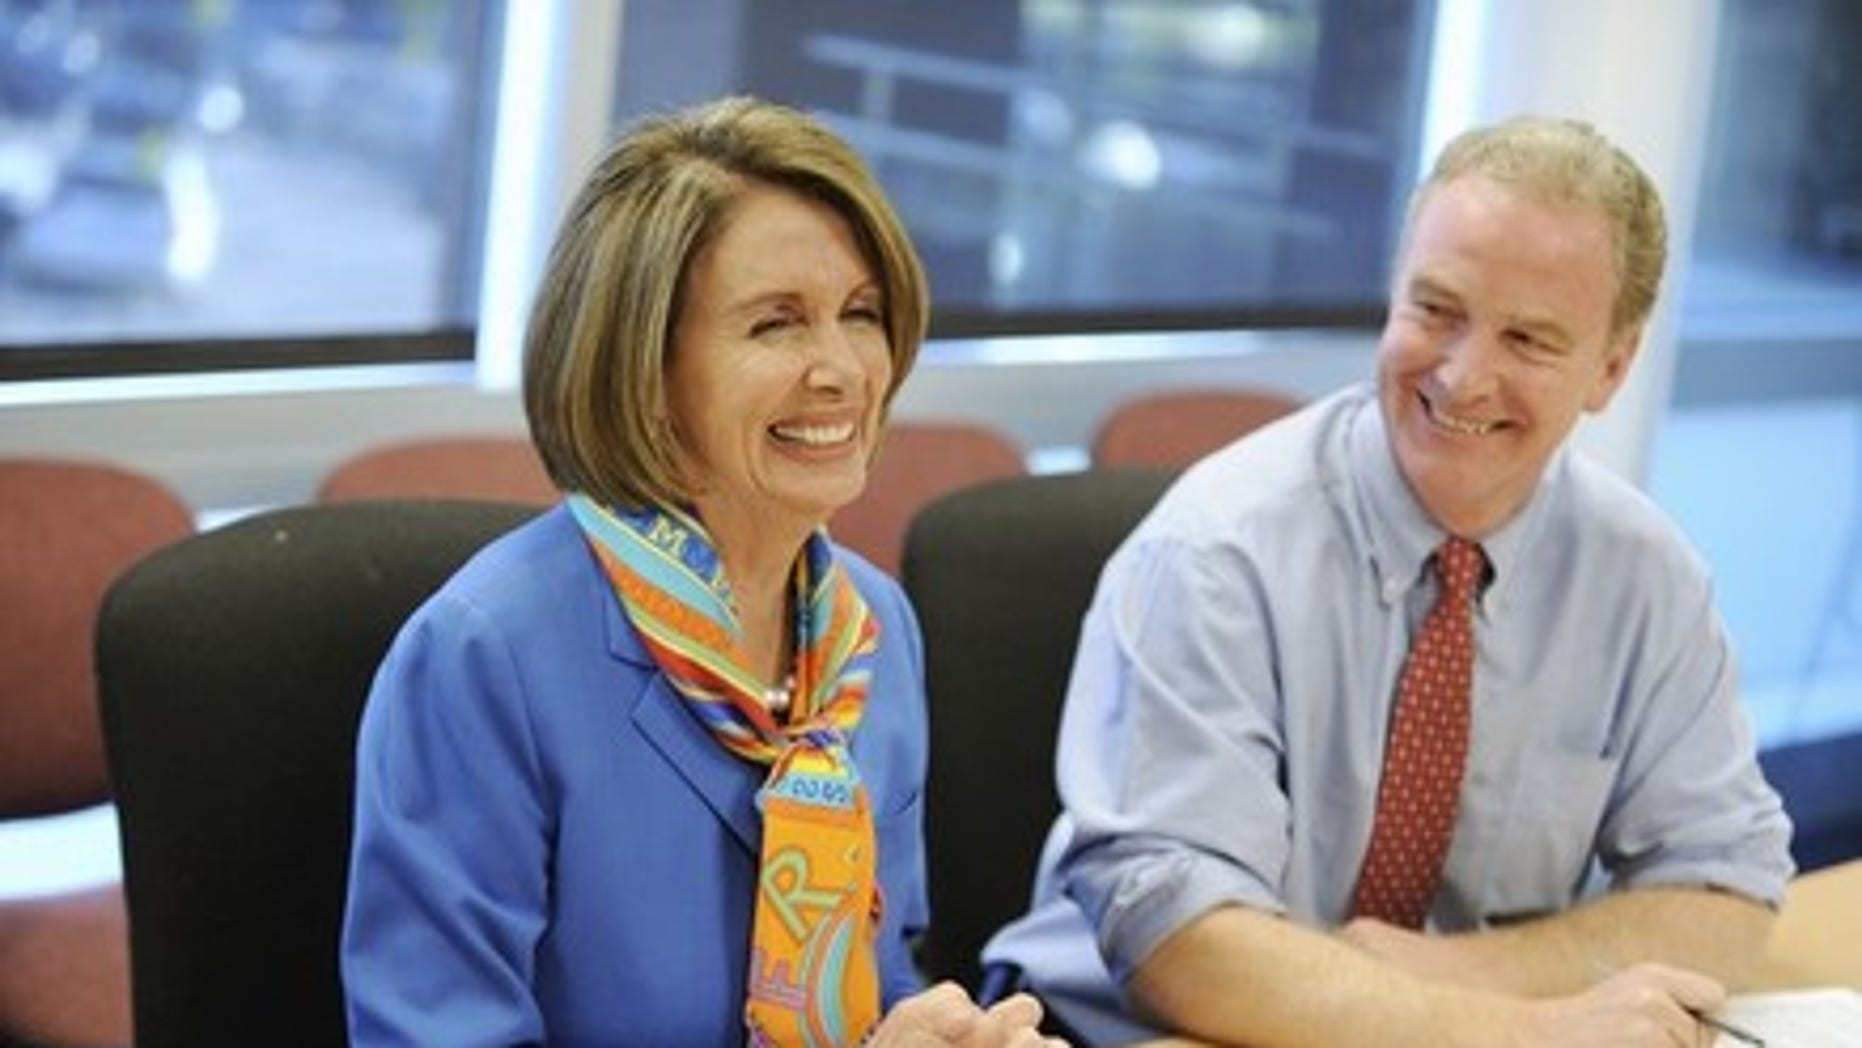 Tuesday: House Speaker Nancy Pelosi and Democratic Congressional Campaign Committee Chairman Chris Van Hollen talk to reporters at Democratic National Committee headquarters in Washington.